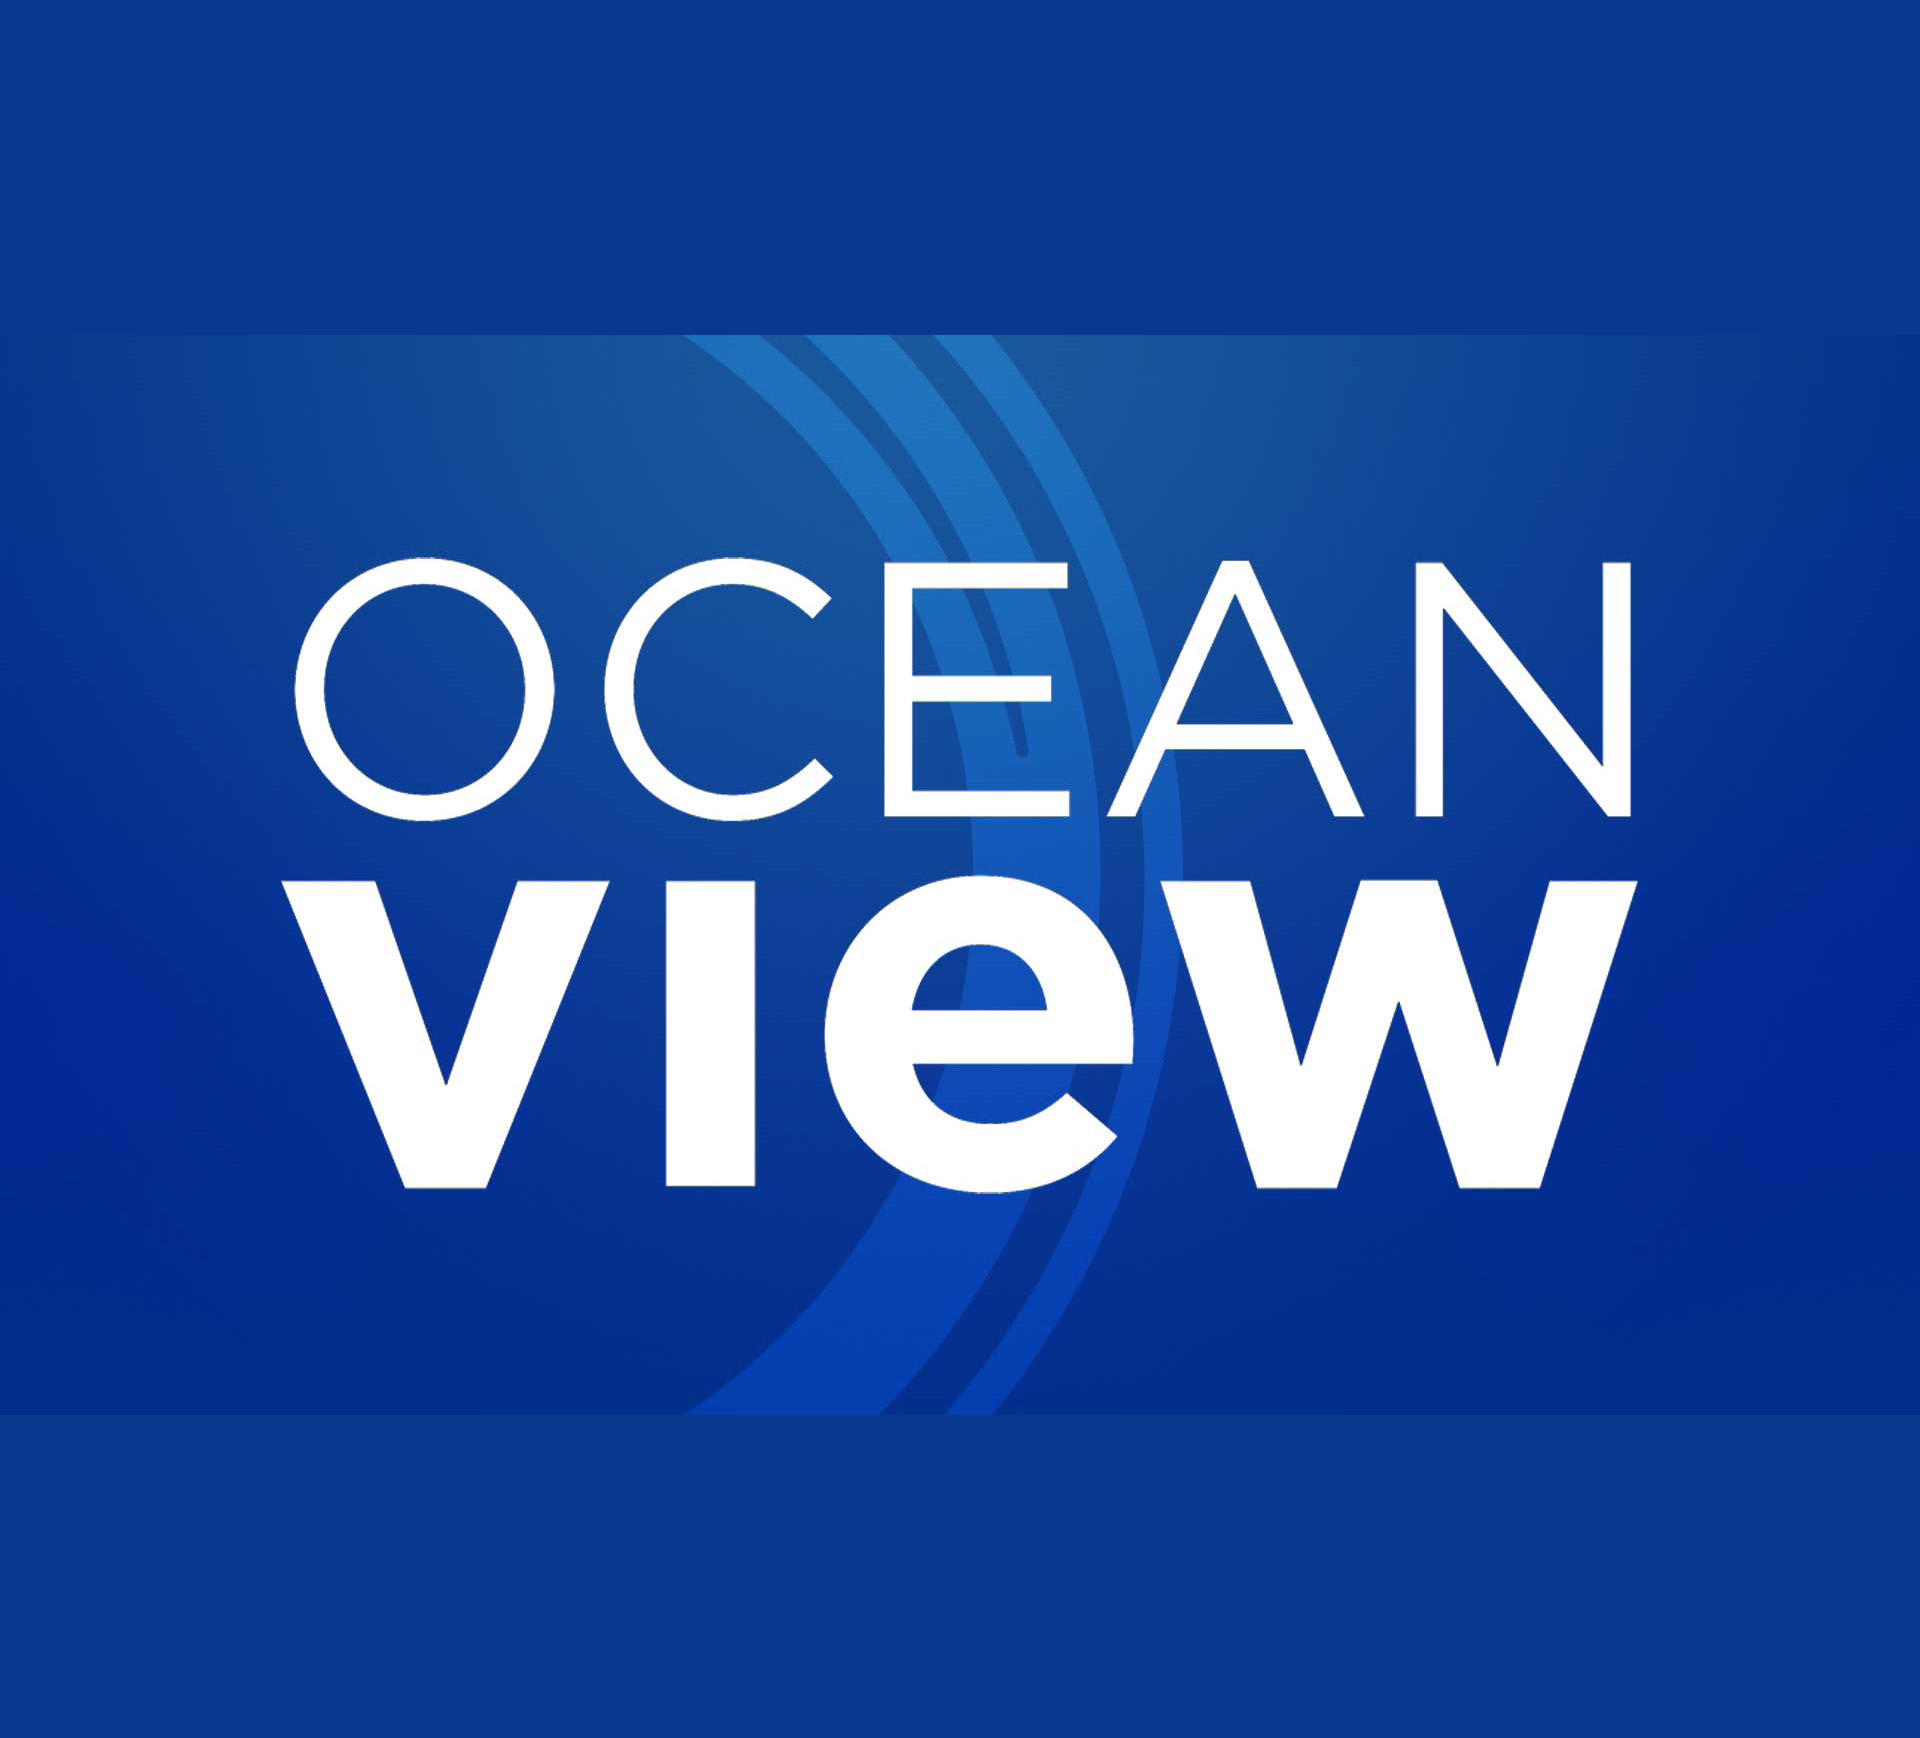 carnival corporation launches oceanview